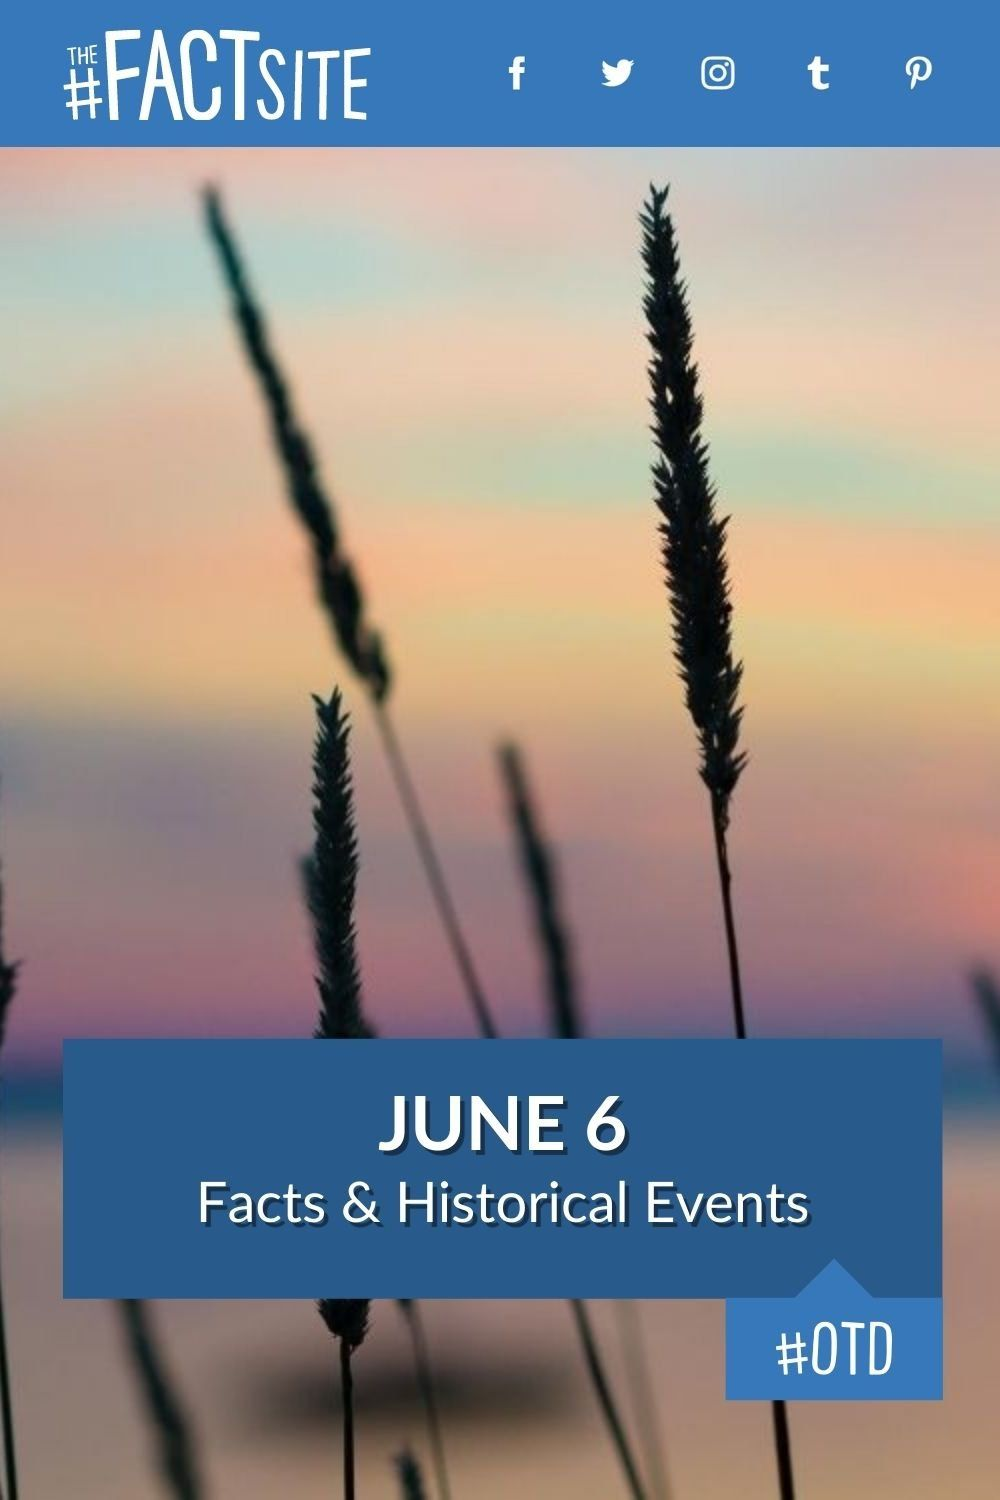 Facts & Historic Events That Happened on June 6